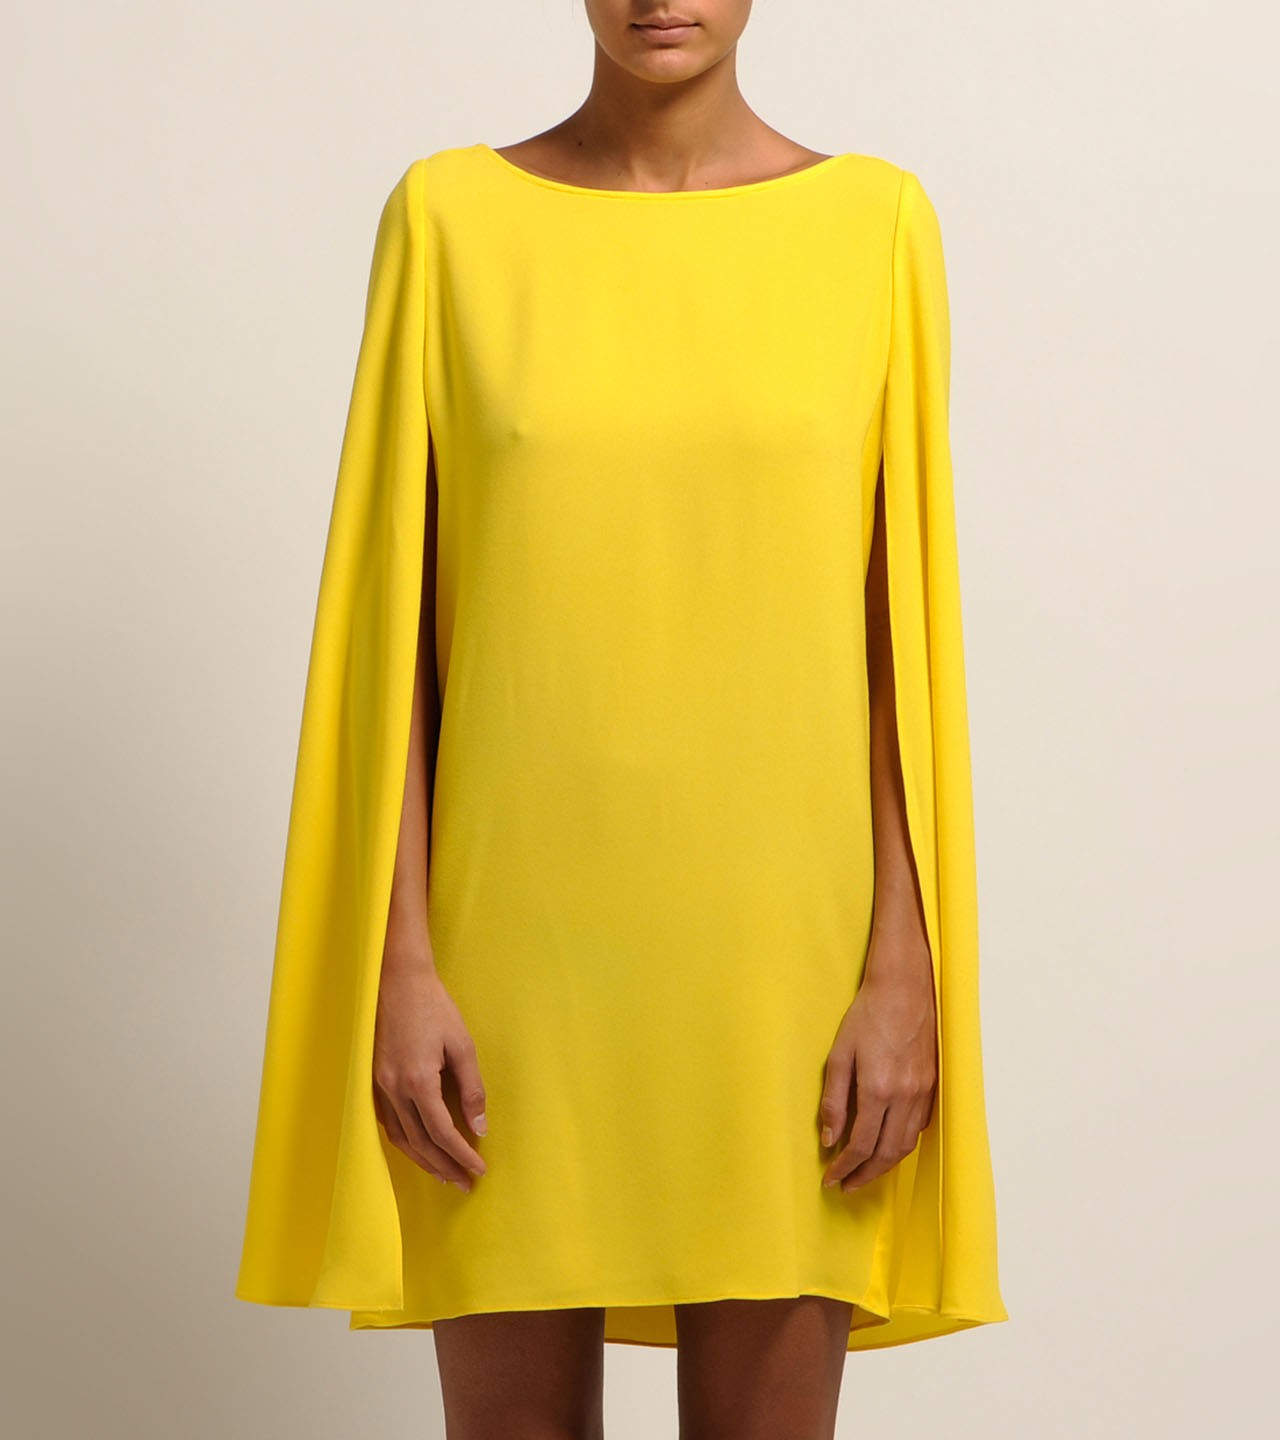 Source google yellow cape dress rm55 brand new fits up to uk10